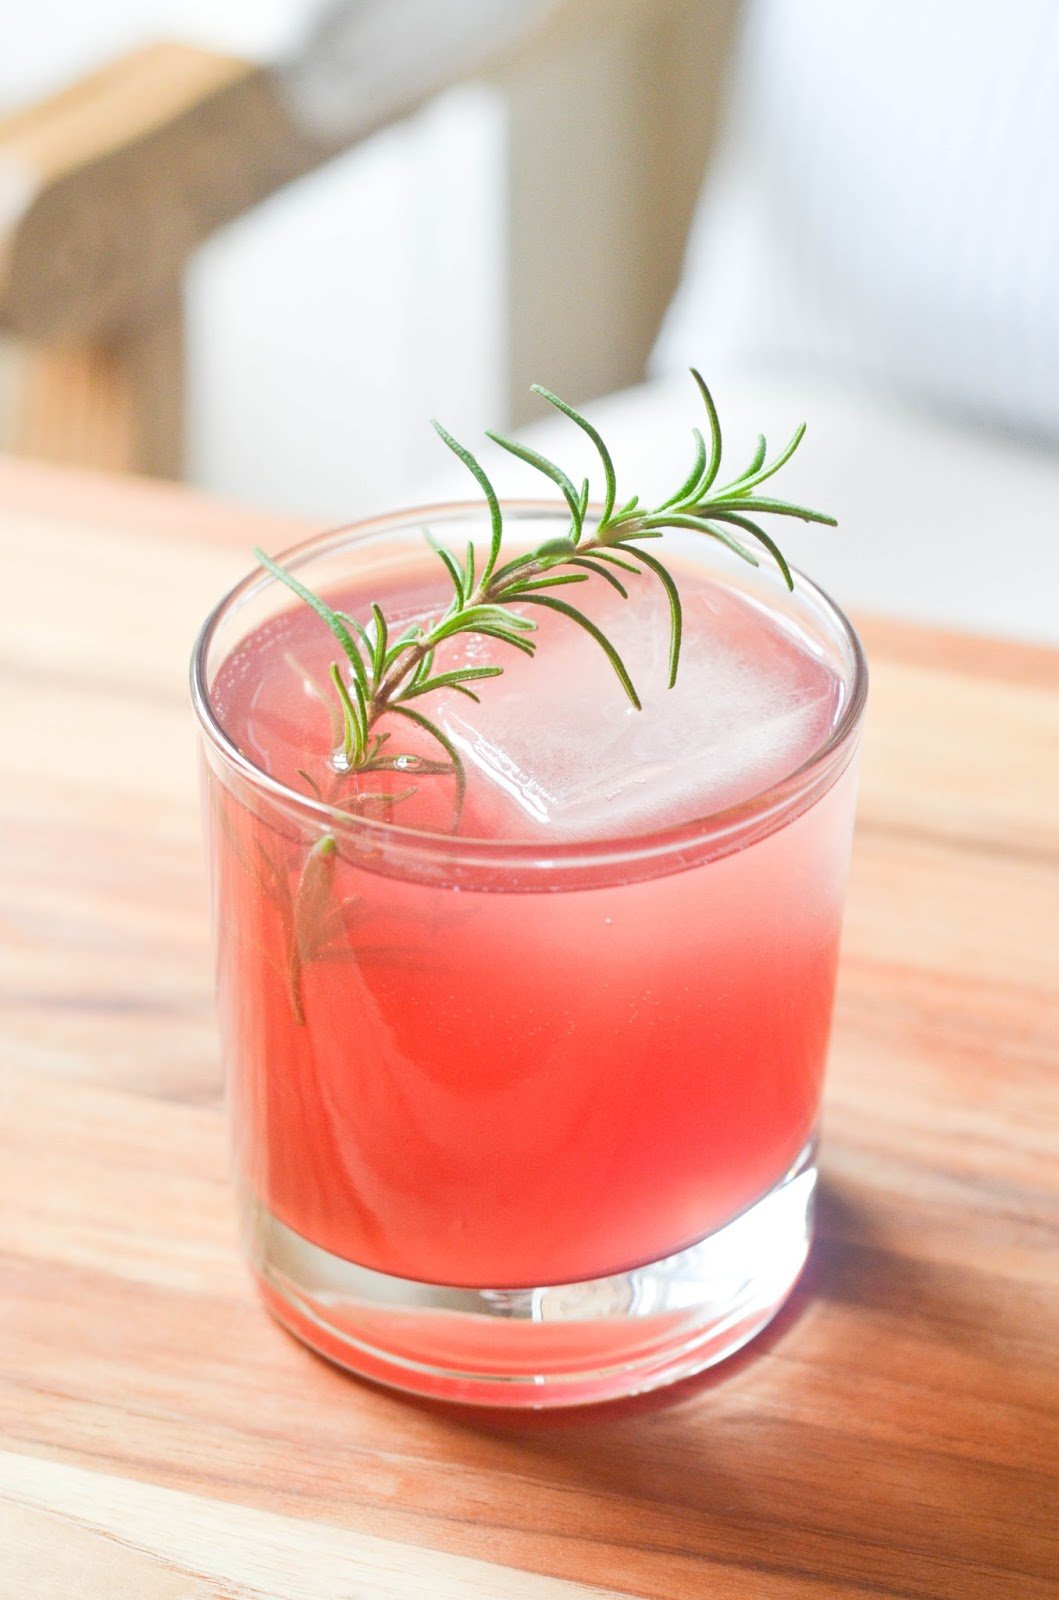 rosemary pomegranate gin fizz | #proseccointhepark